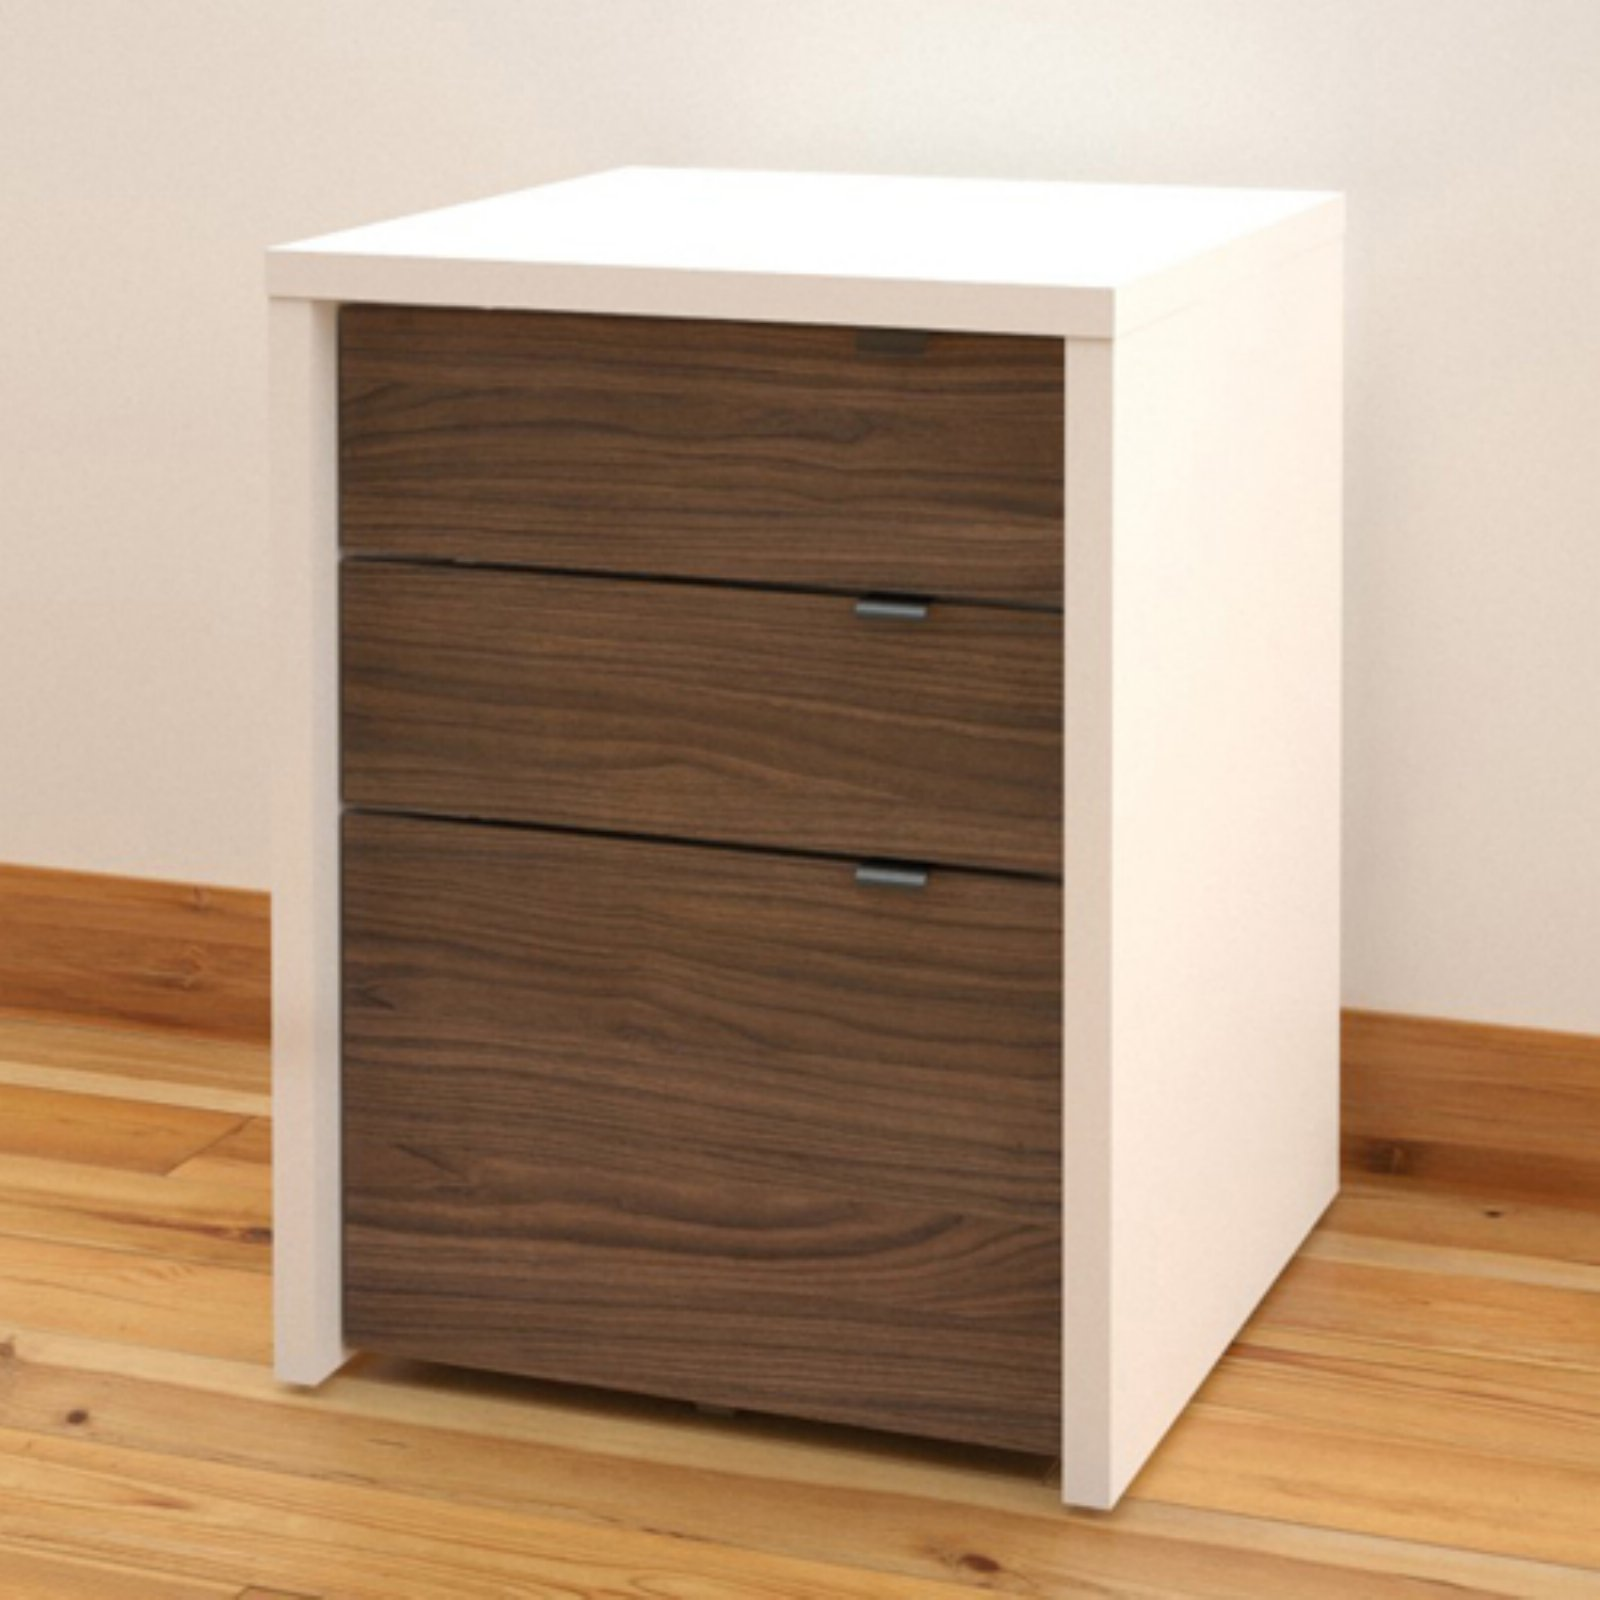 Nexera 3 Drawers Vertical Wood Composite Filing Cabinet, Multiple Finishes available